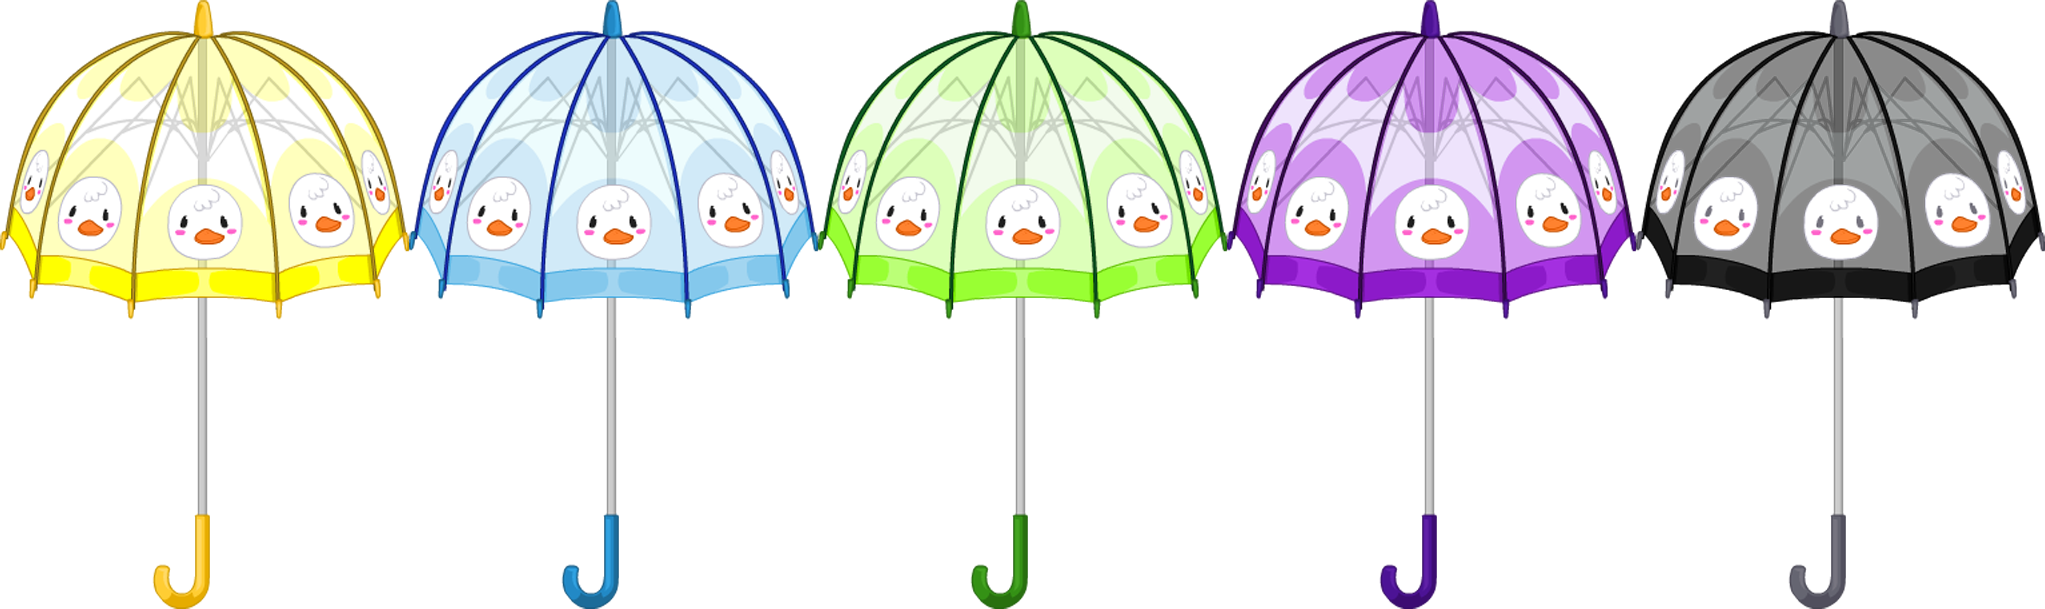 Apr. 2016 Rainy Day Duckling Umbrella